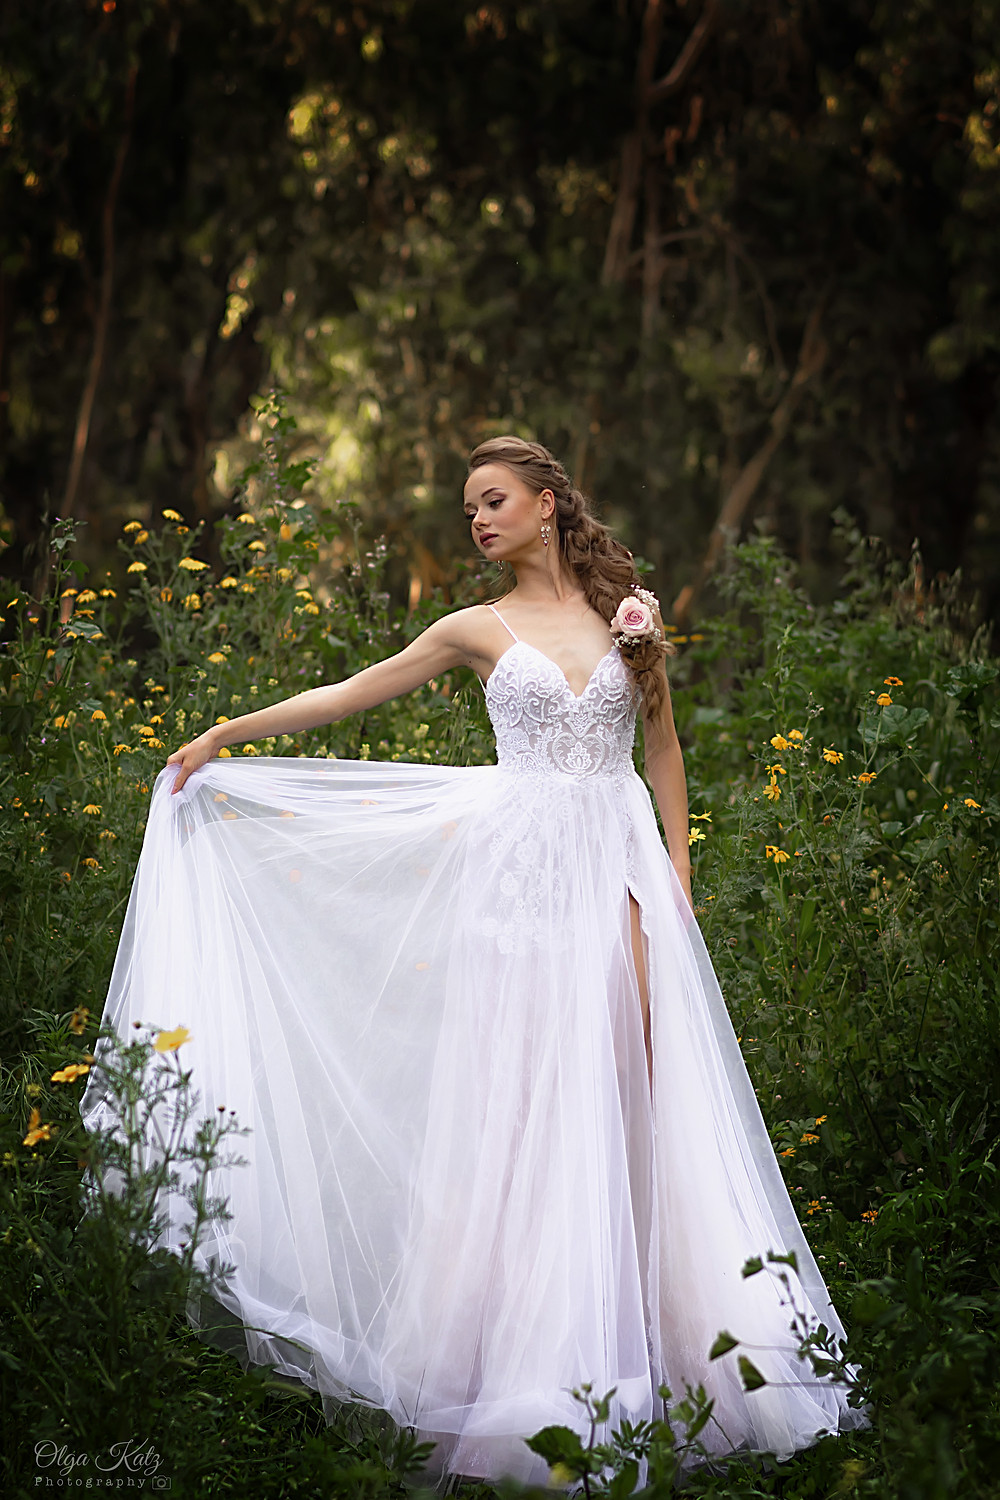 tailor-made bridal gown